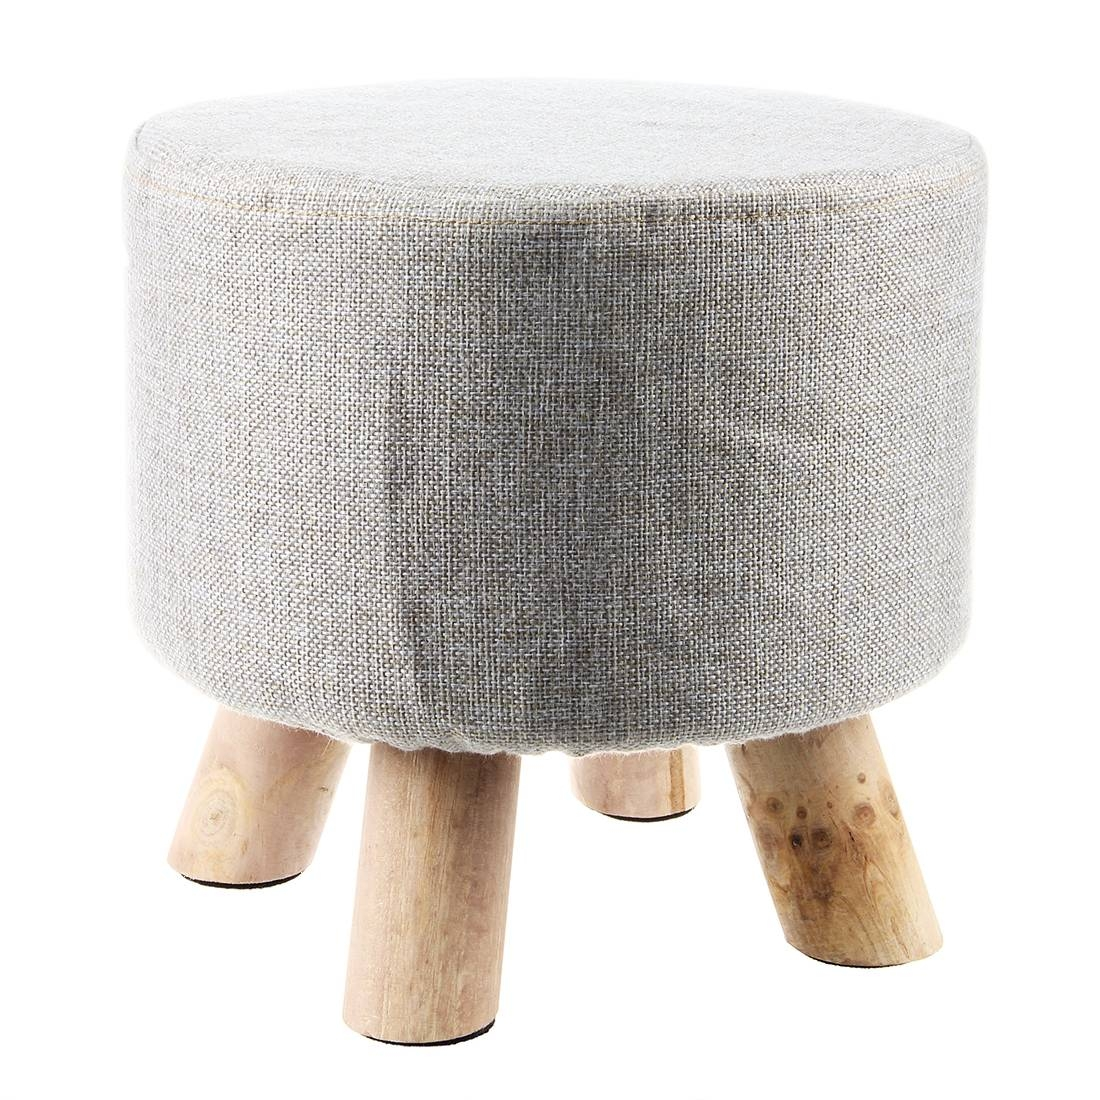 Online Get Cheap Round Footstool -Aliexpress | Alibaba Group intended for Fabric Footstools (Image 23 of 30)